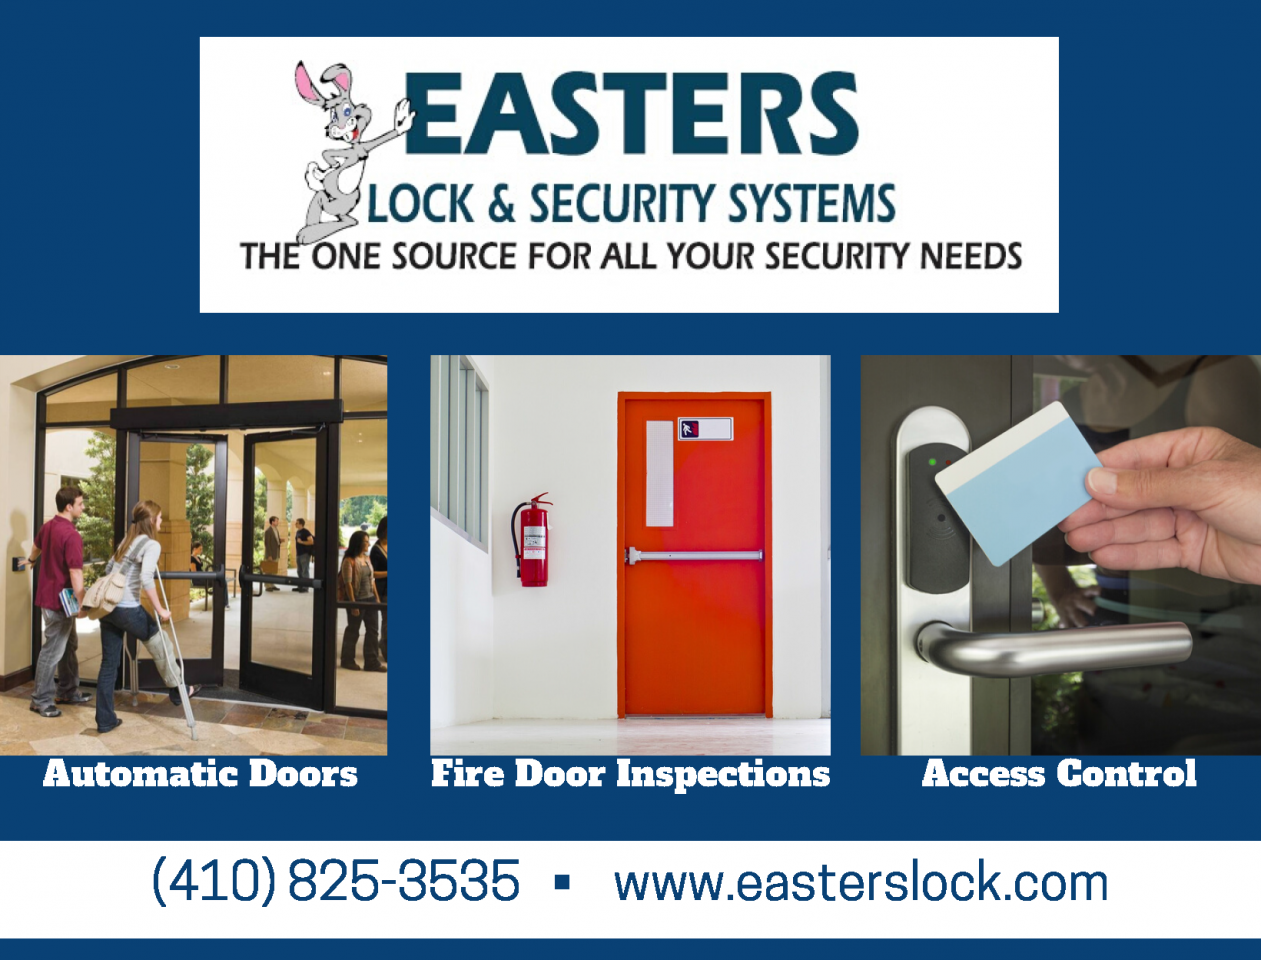 Eatsers Lock & Security Systems - The one source for all your security needs. Atomatic doors, fire door inspections, access control, and more. Call 410 825 3535 or head to www.easterslock.com